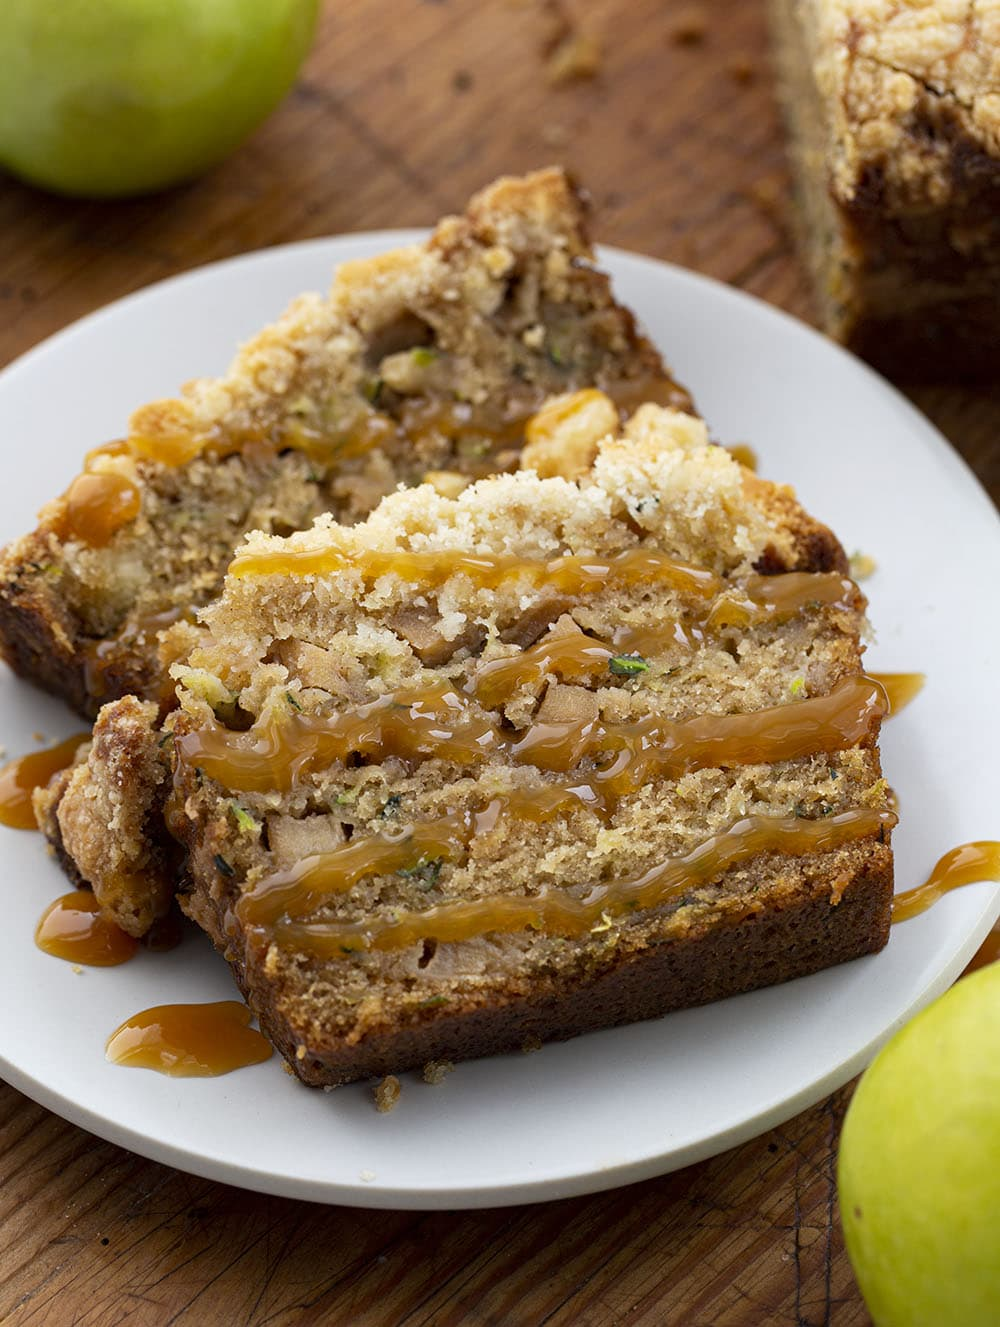 Two Pieces Apple Zucchini Bread on a Plate Drizzled with Caramel